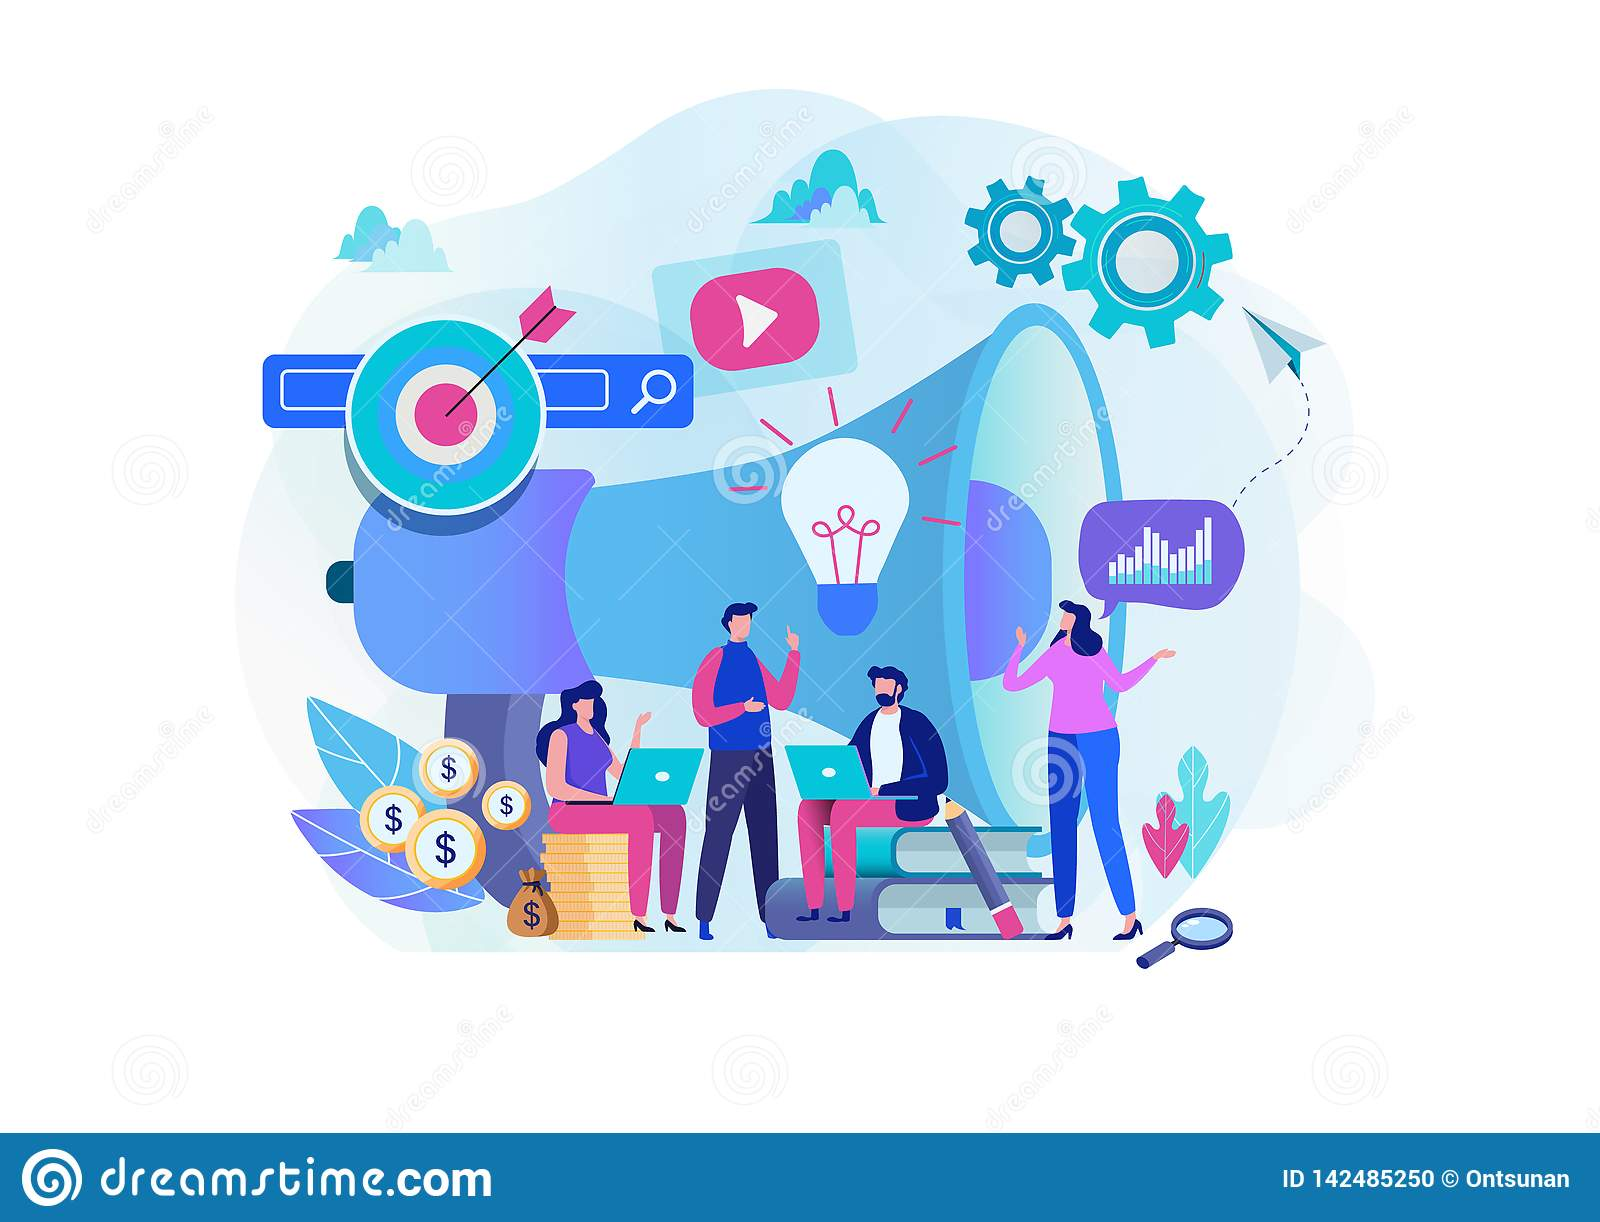 Digital marketing strategy team. Content manager. Flat cartoon character graphic design.